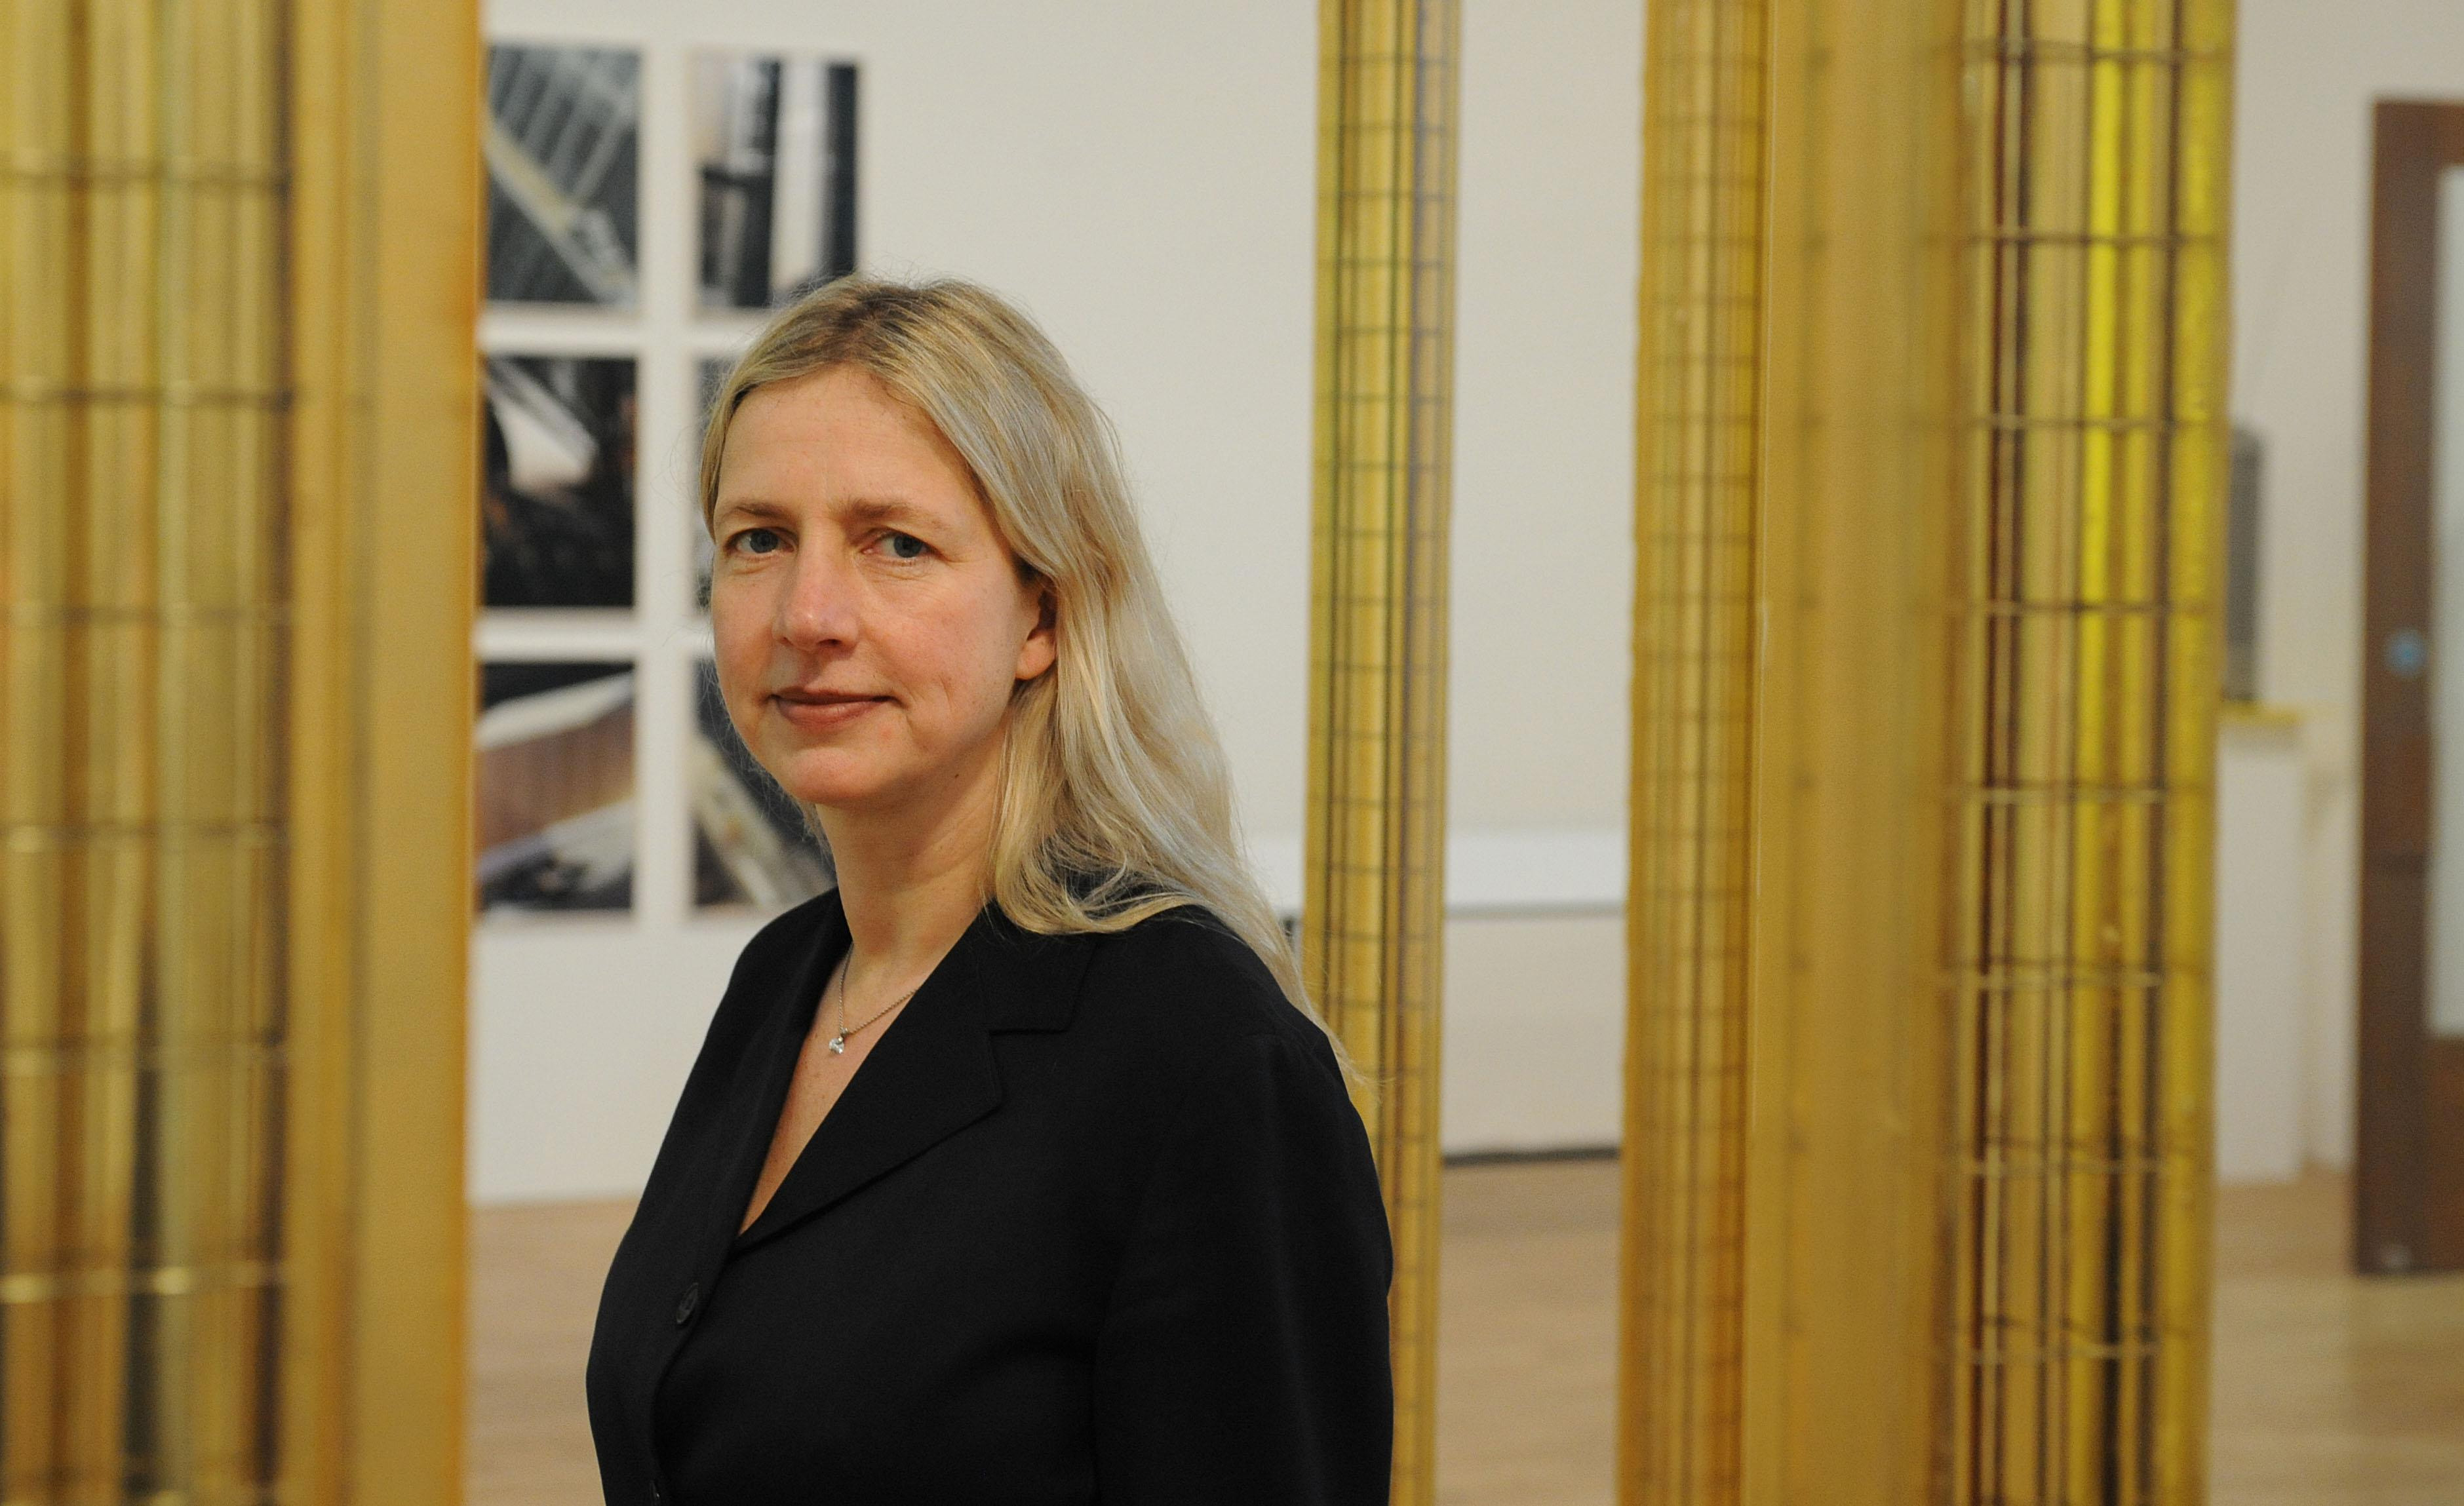 Iwona Blazwick OBE, director of the newly re-opened Whitechapel Art Gallery in London, during a media preview to promote the gallery's extension which has cost 13.5 million. (Photo by Ian West - PA Images/PA Images via Getty Images)